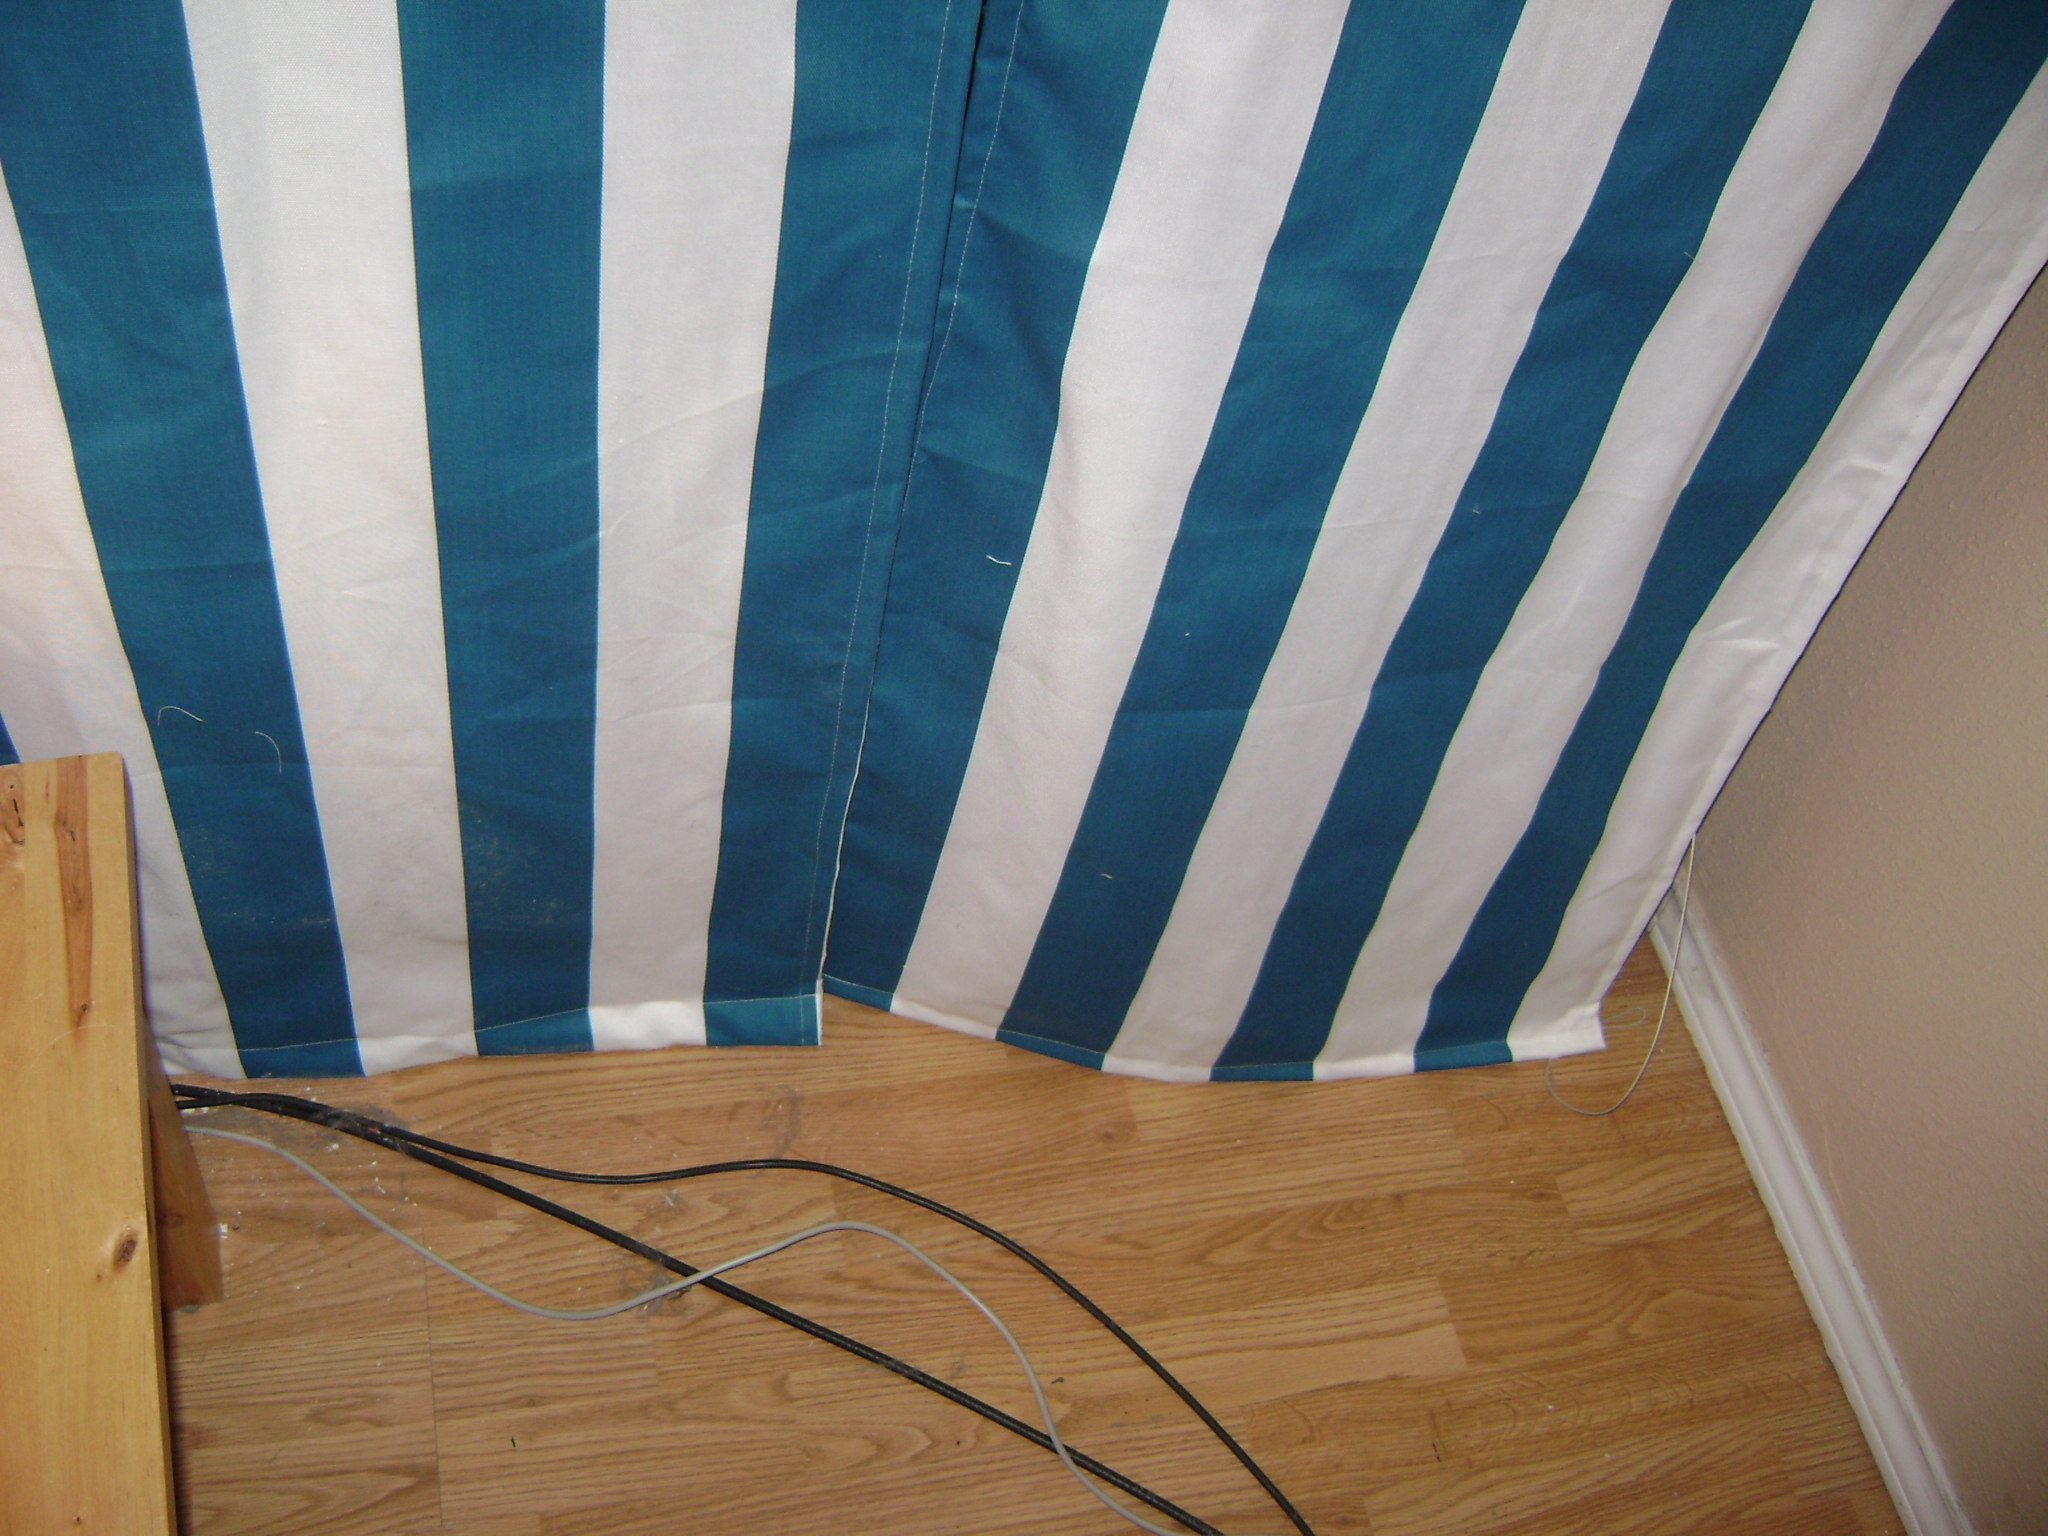 Flat panel curtains - Now You Have Custom Made Floor Skimming Panel Curtains I Completed This Project Over Two Evenings I Would Say Total Time Spent On All Curtains Was About